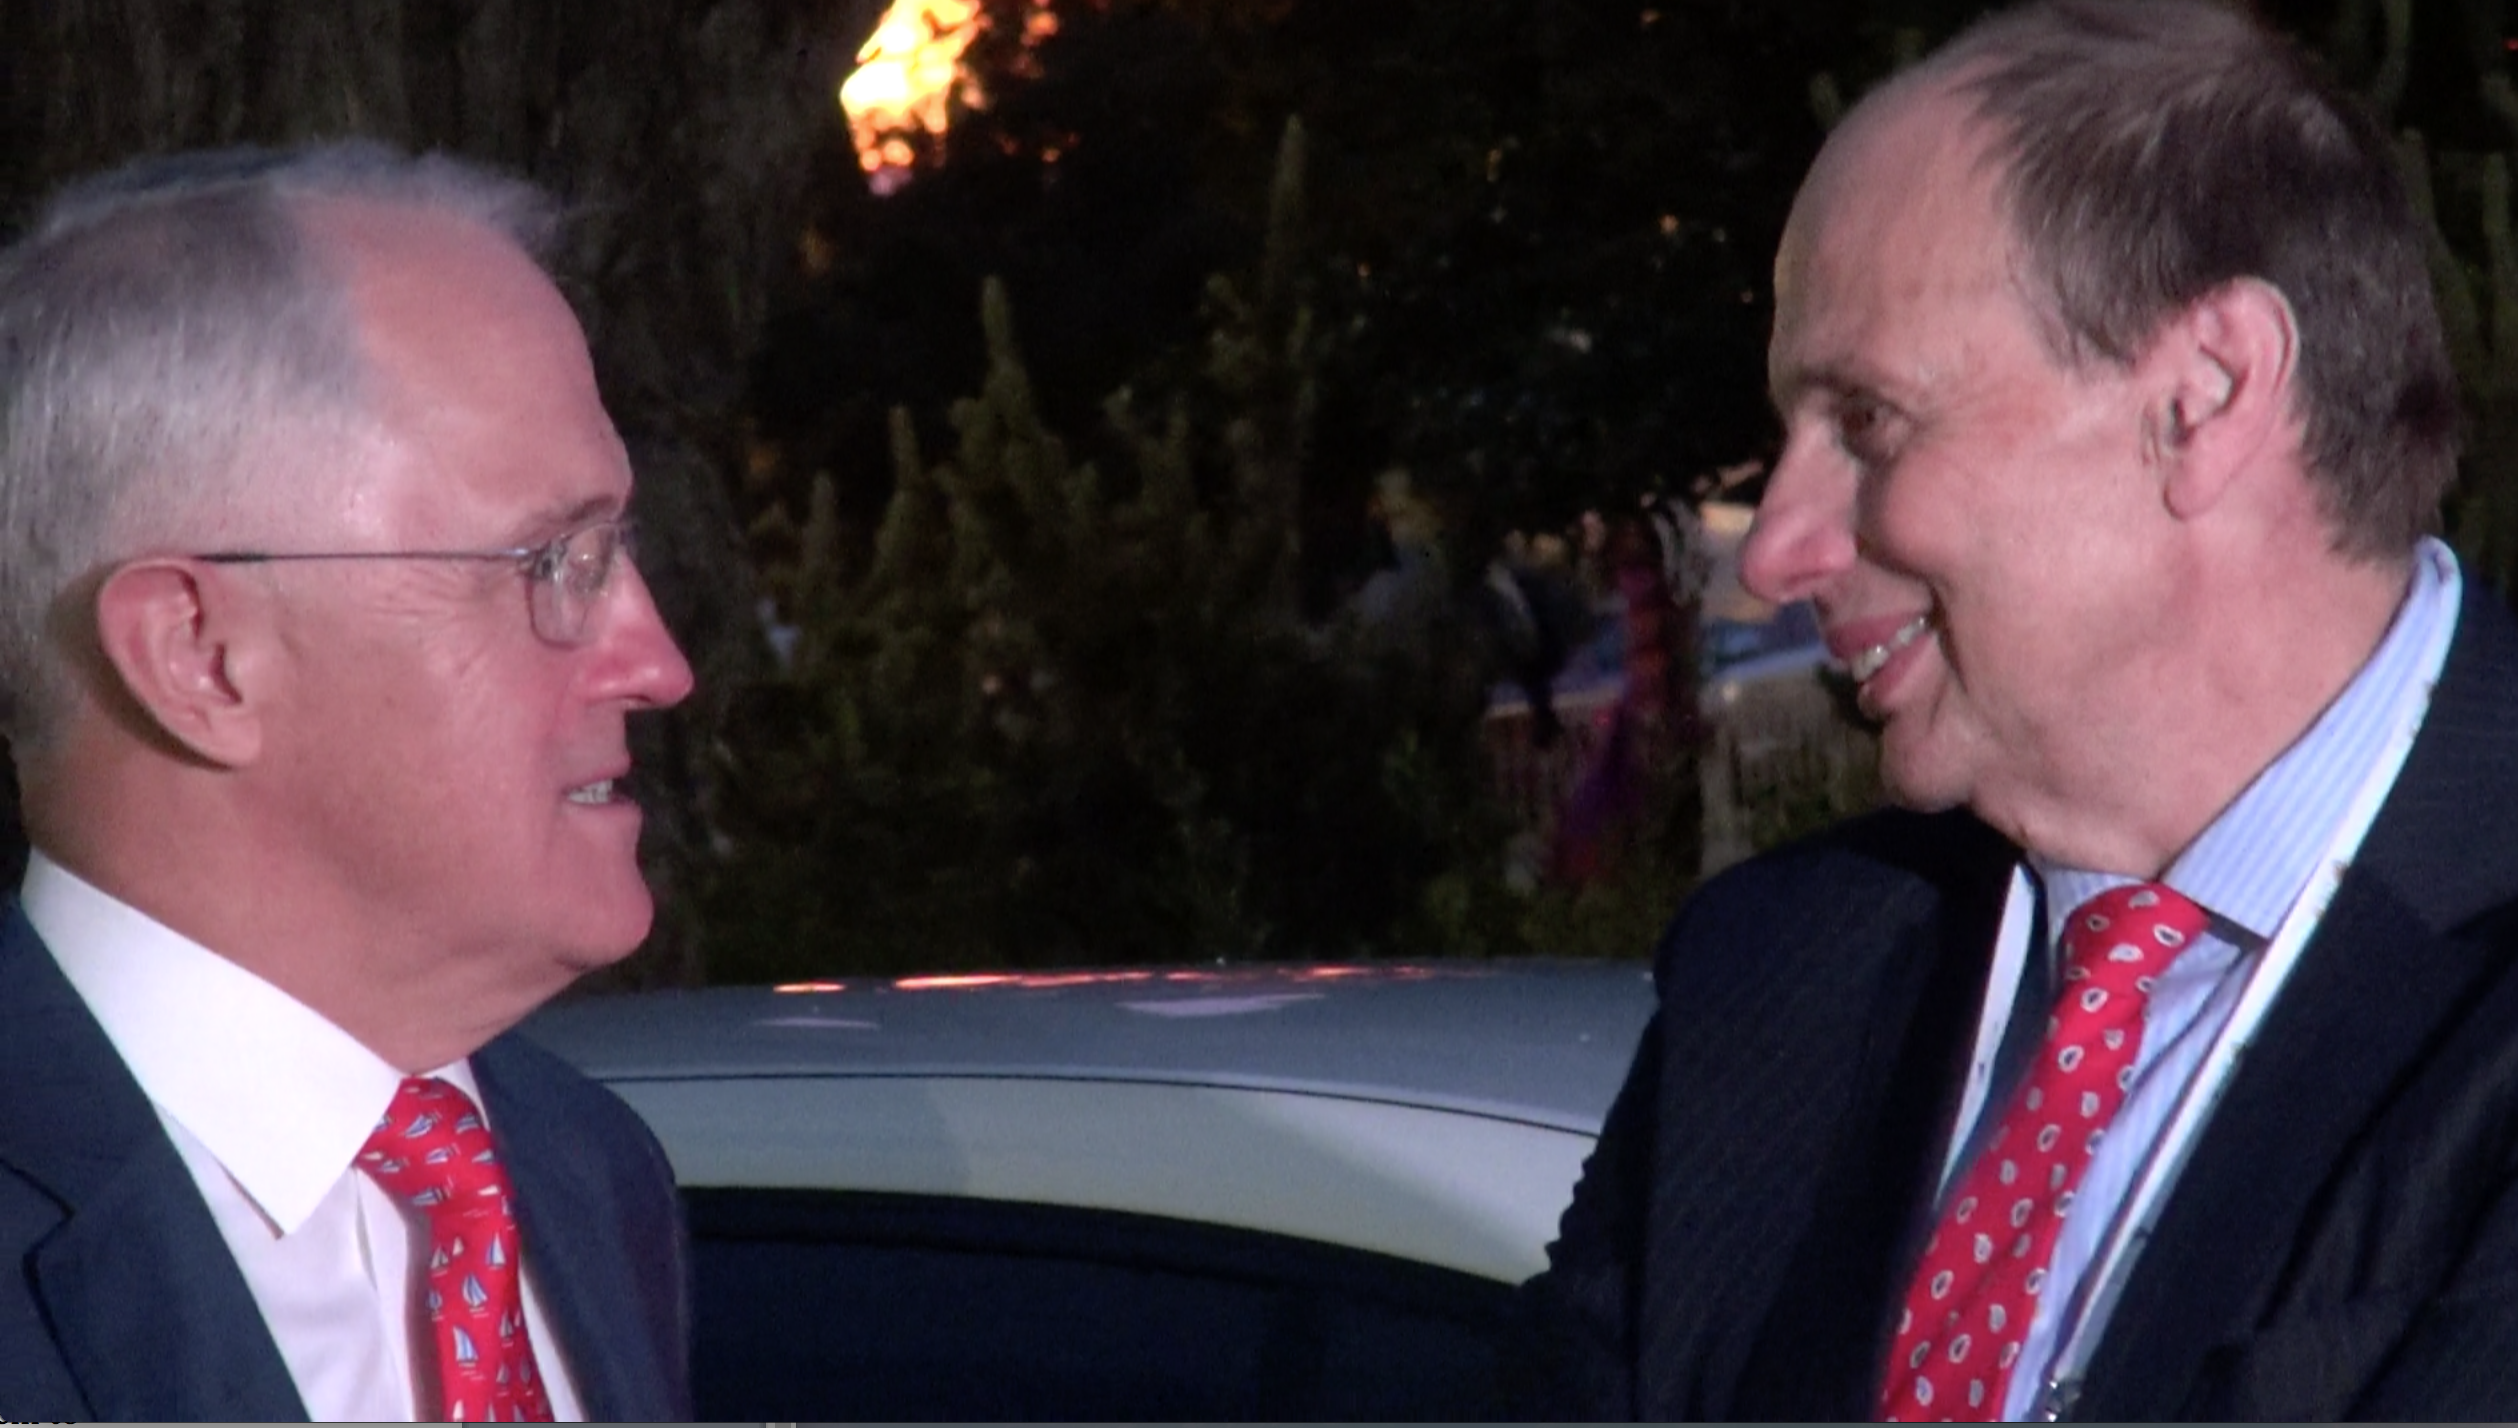 Former Origin boss Grant King (right) pictured with the PM Malcolm Turnbull in Perth last year.